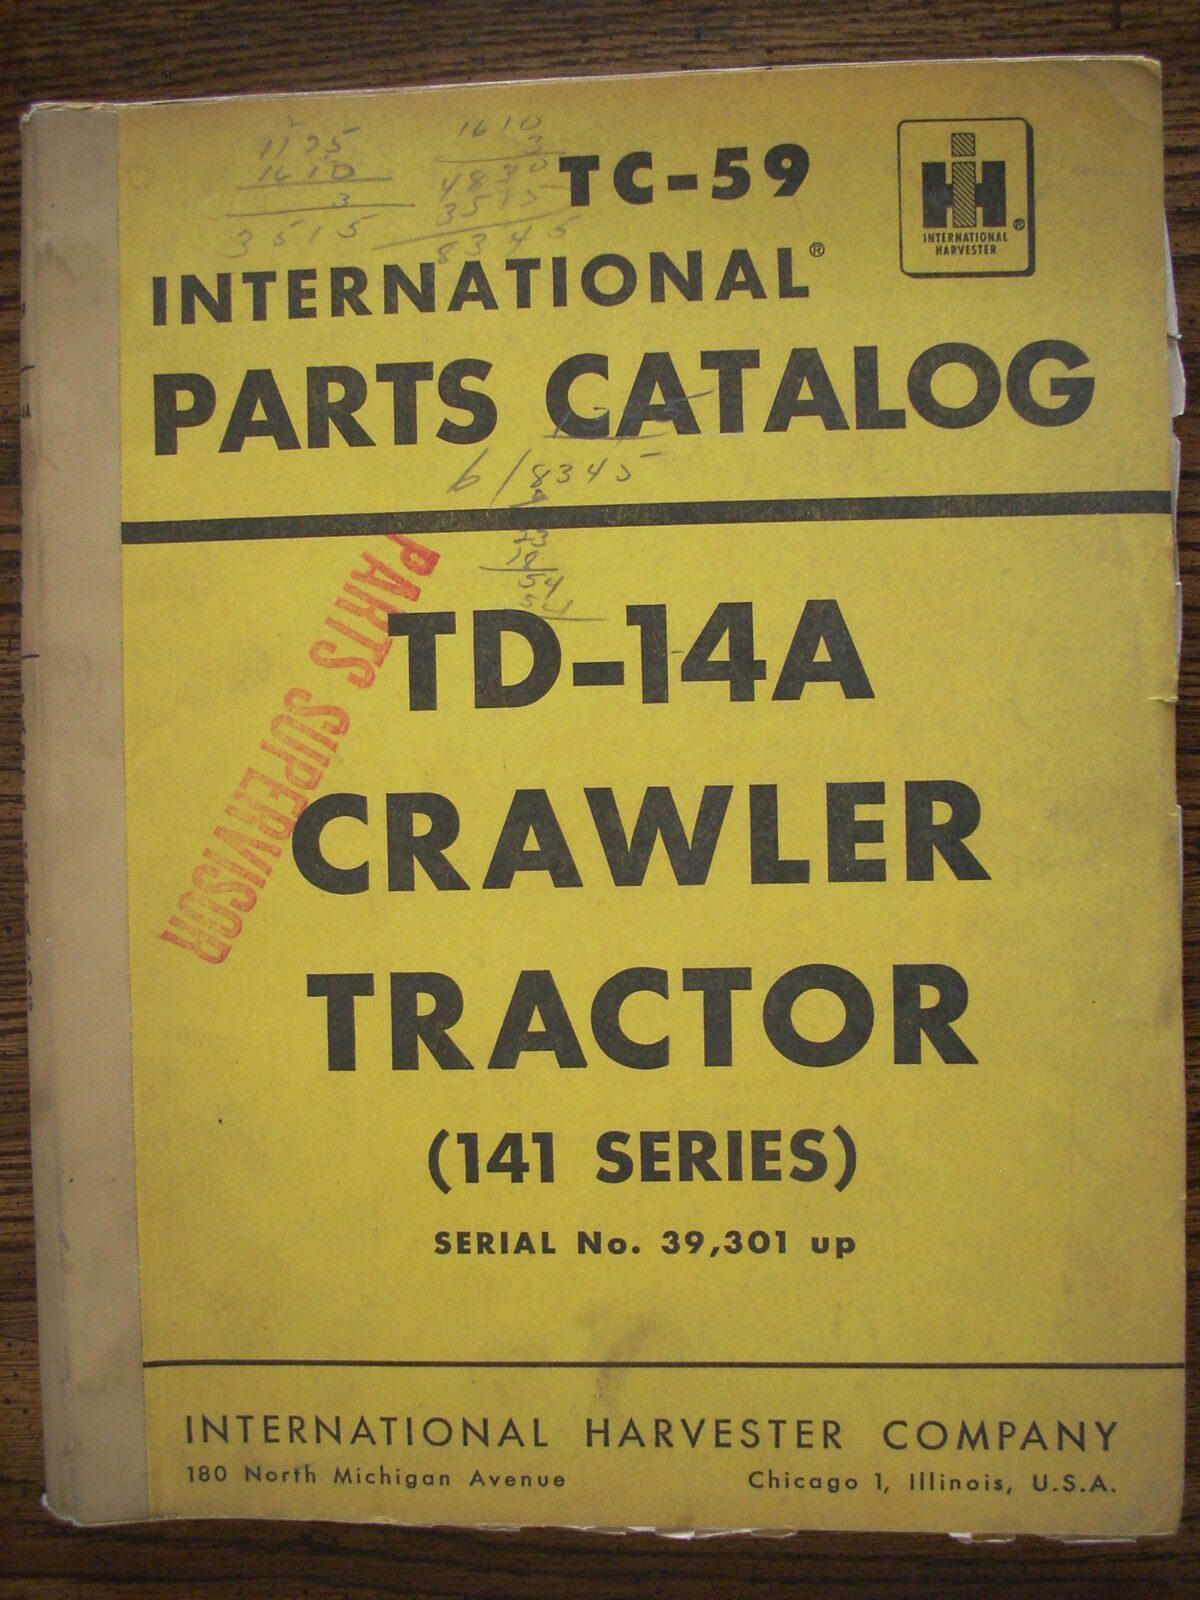 IH Farmall Mccormick International TD14A 141 Series Crawler Parts Manual 1  of 1Only 1 available ...